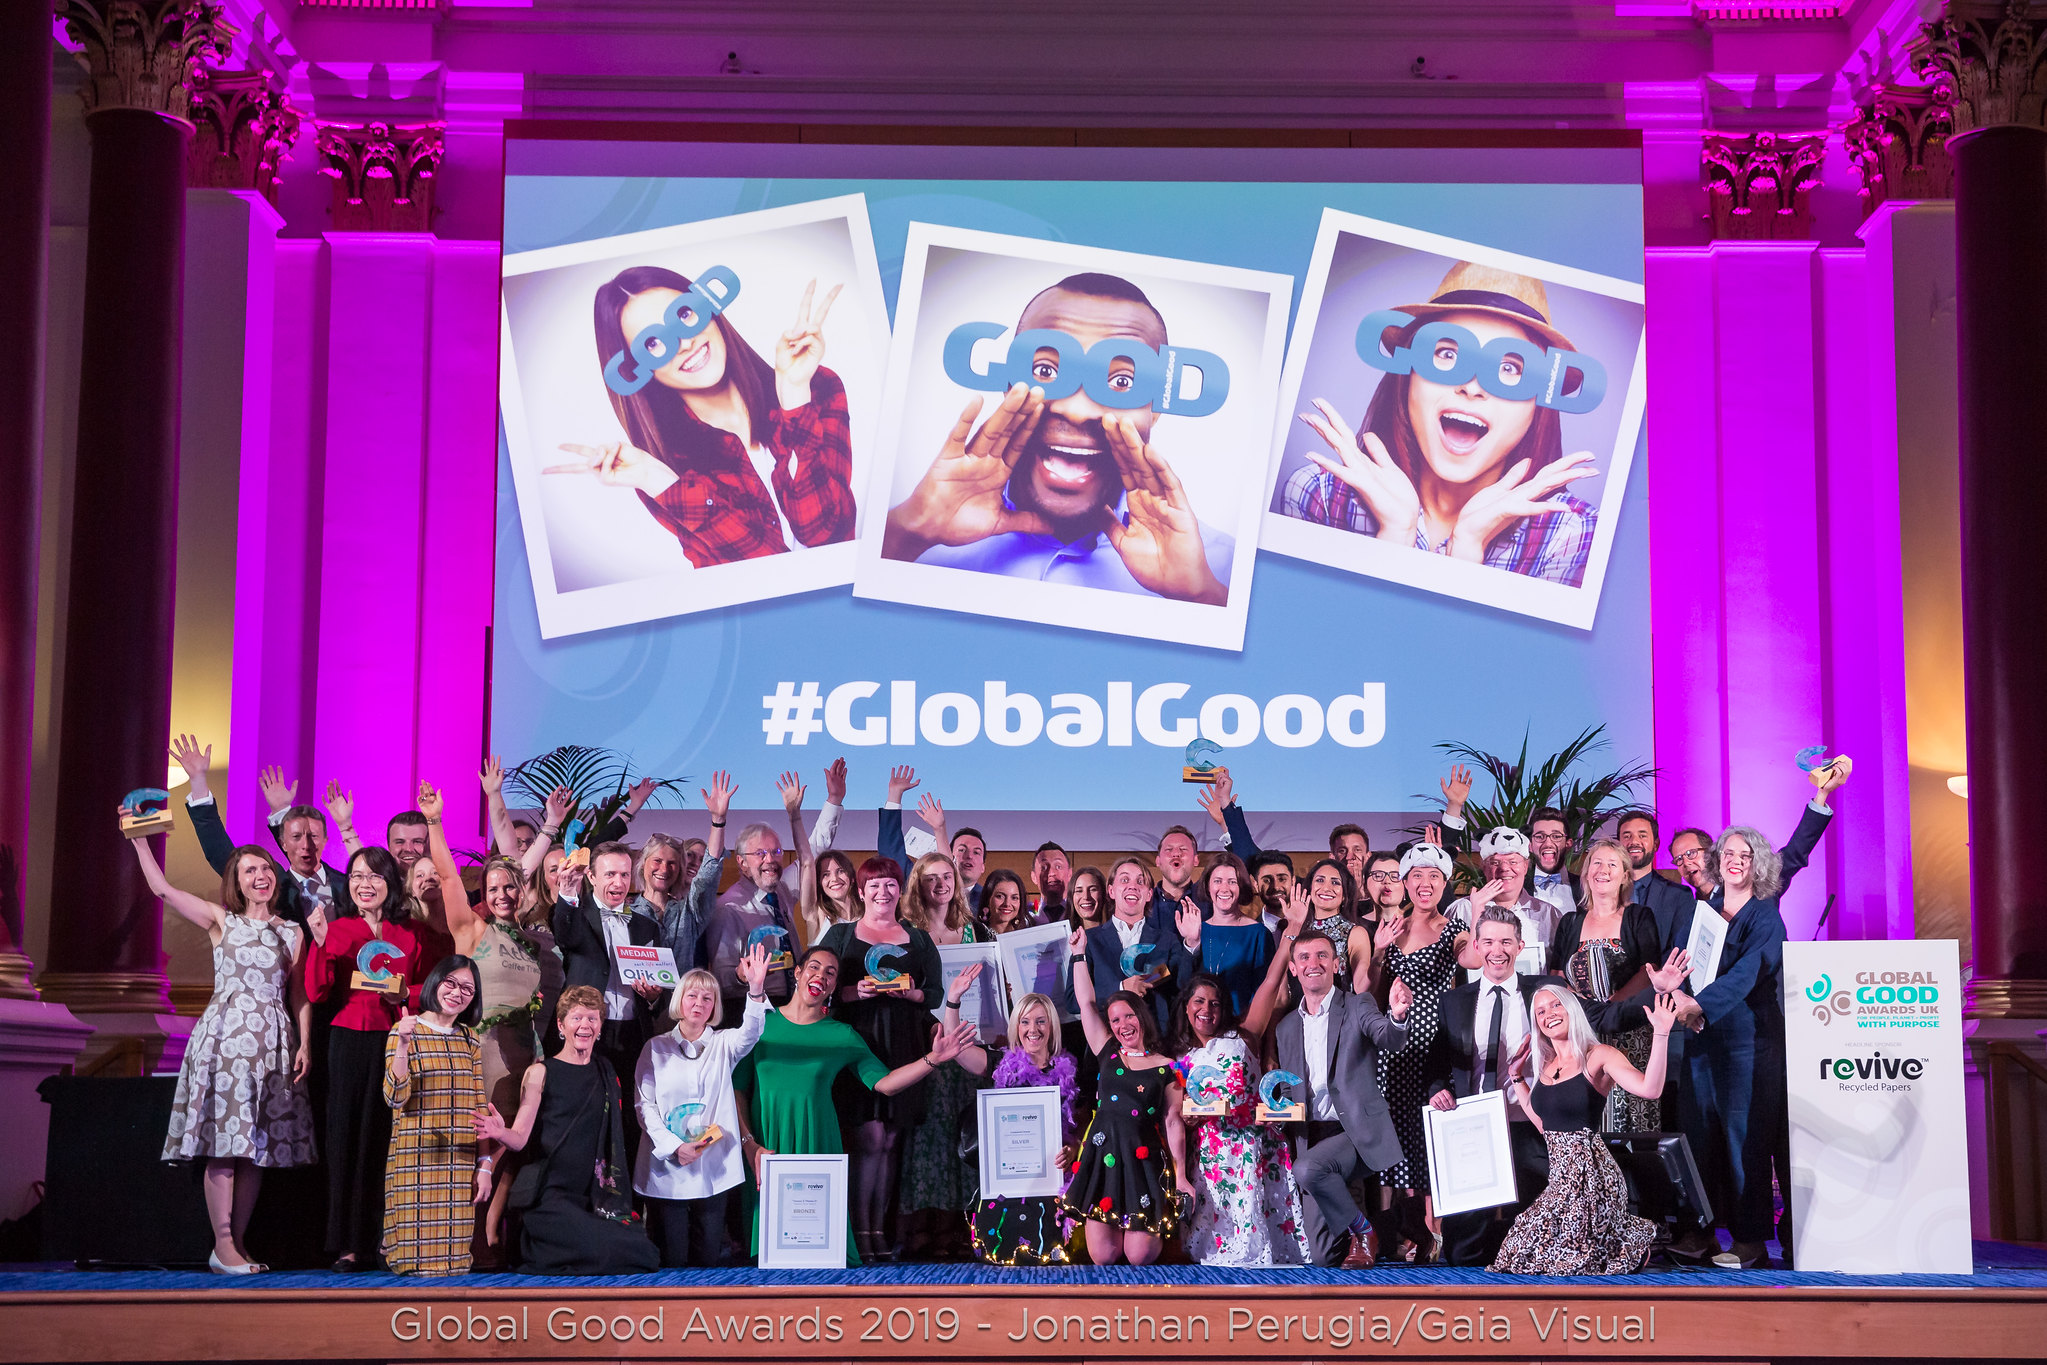 global good awards 2019